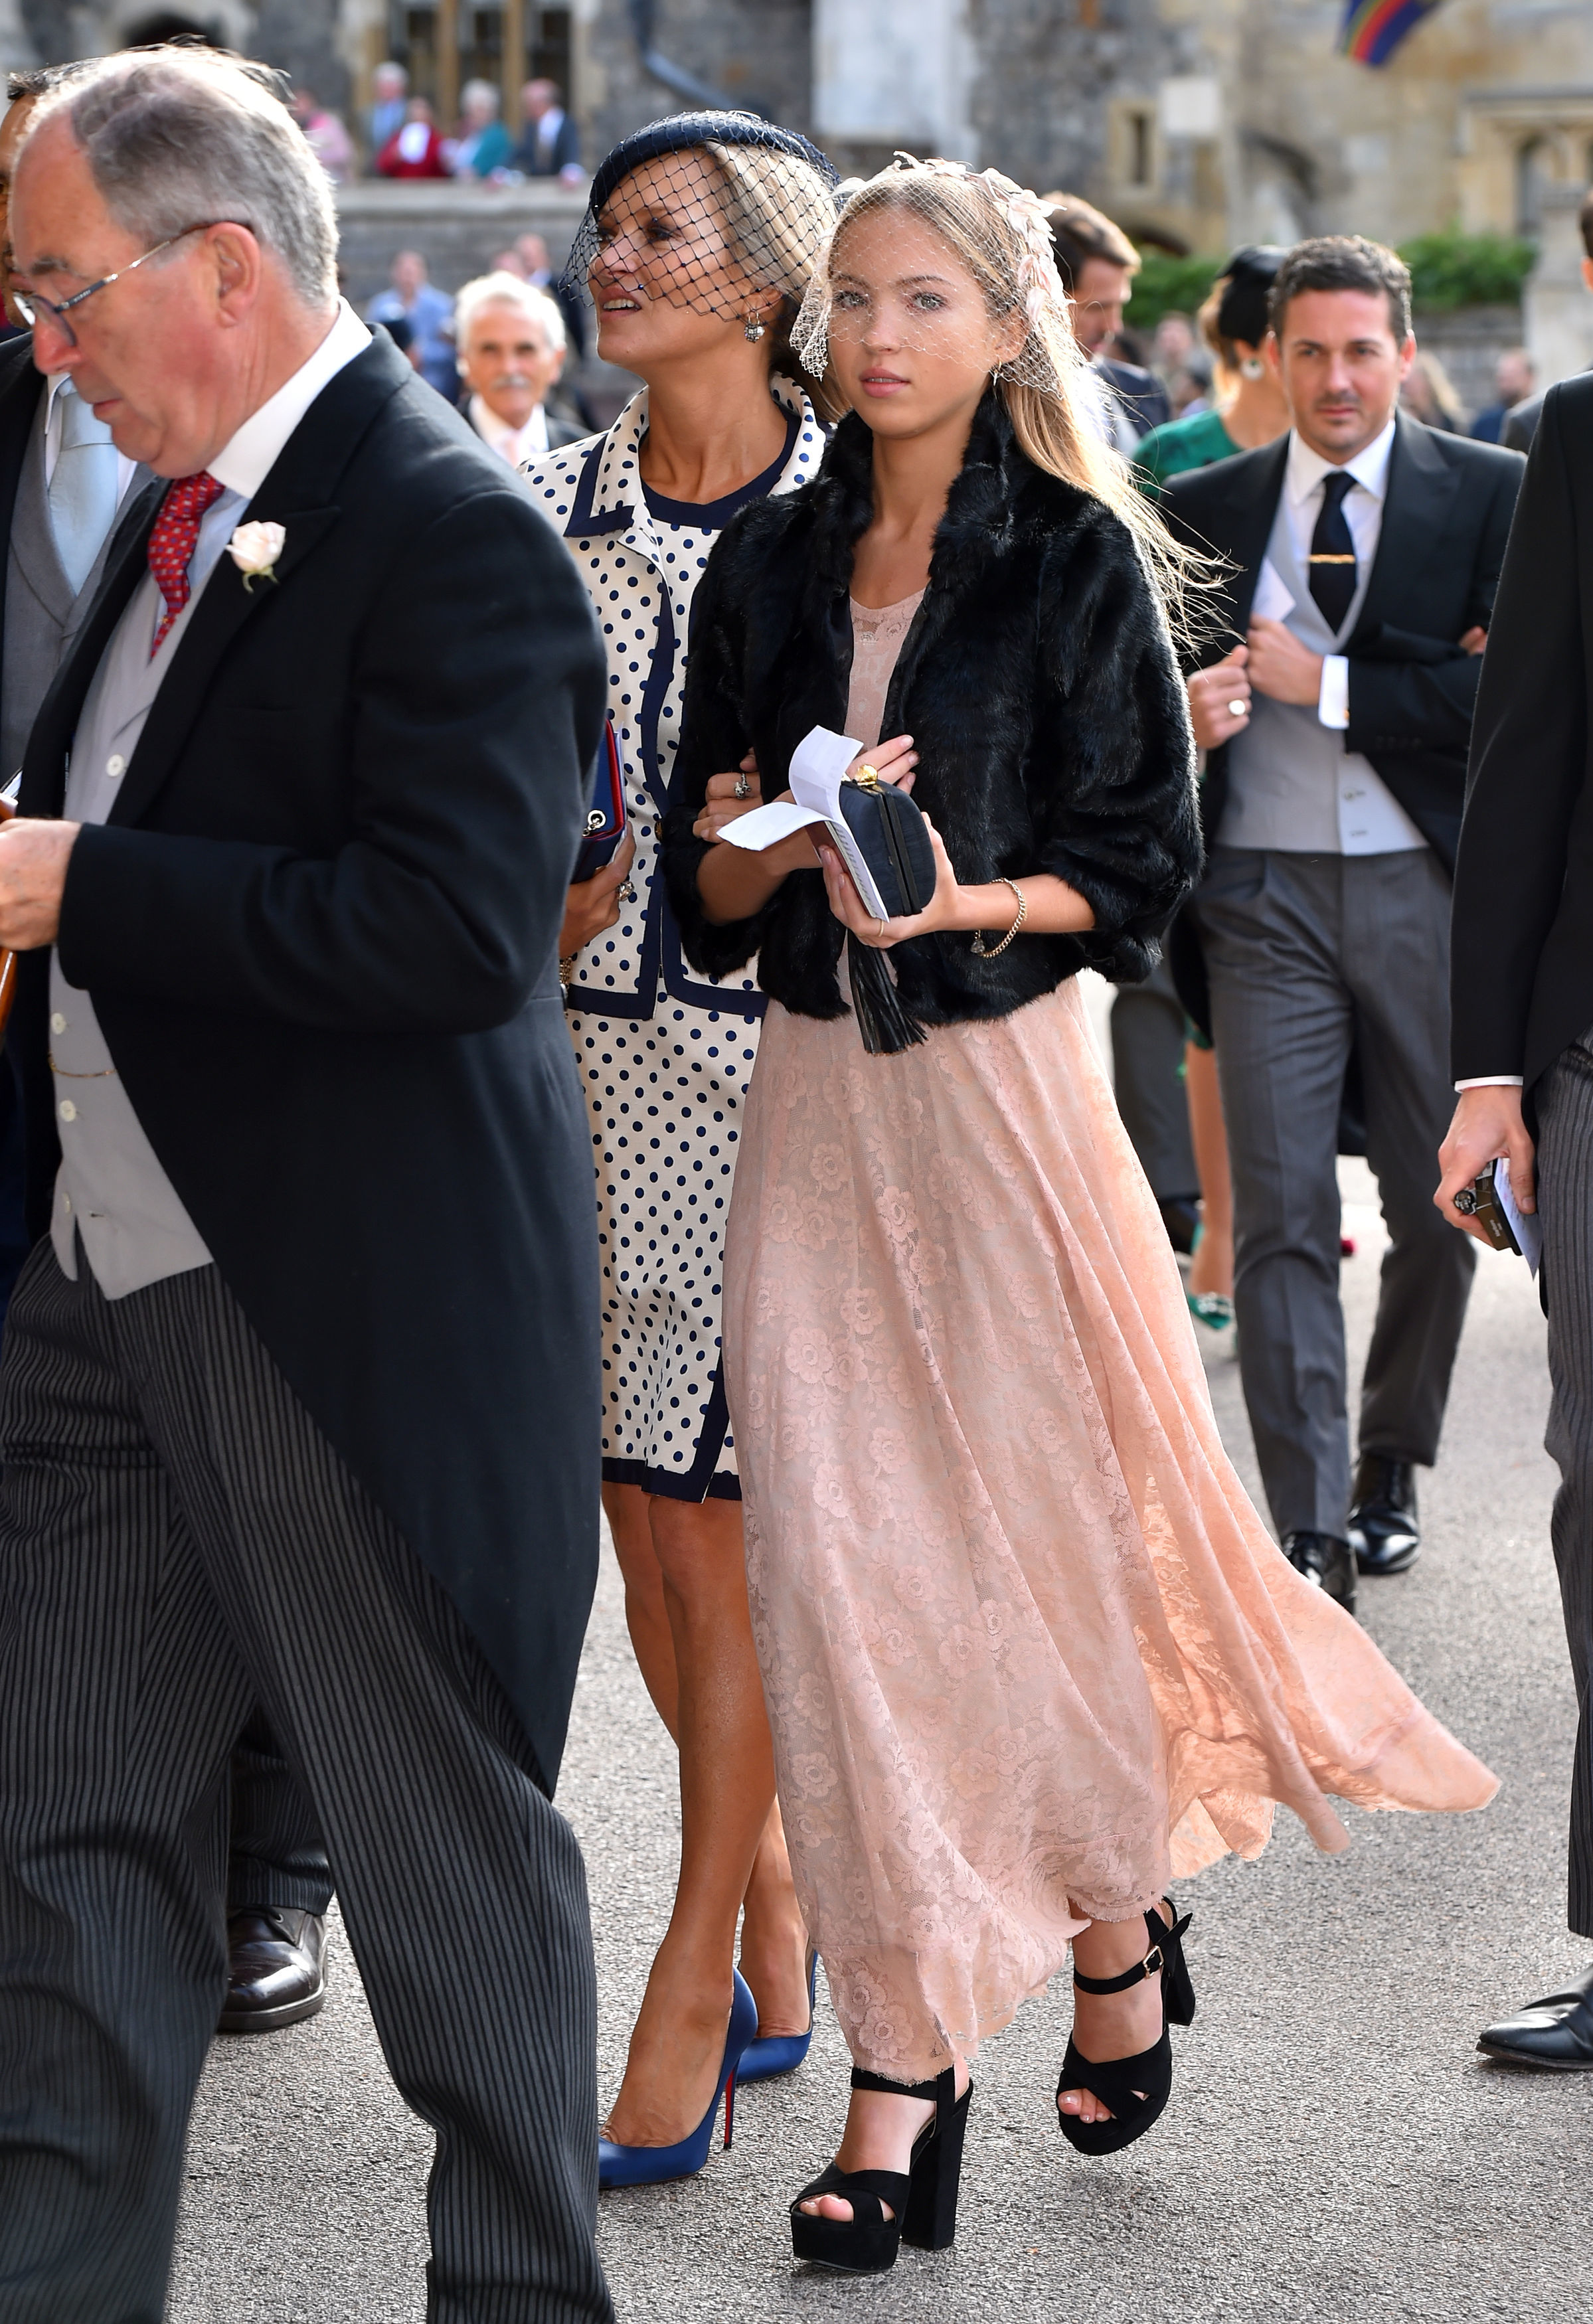 kate moss and daughter lila grace moss hack arrive at the wedding of princess eugenie